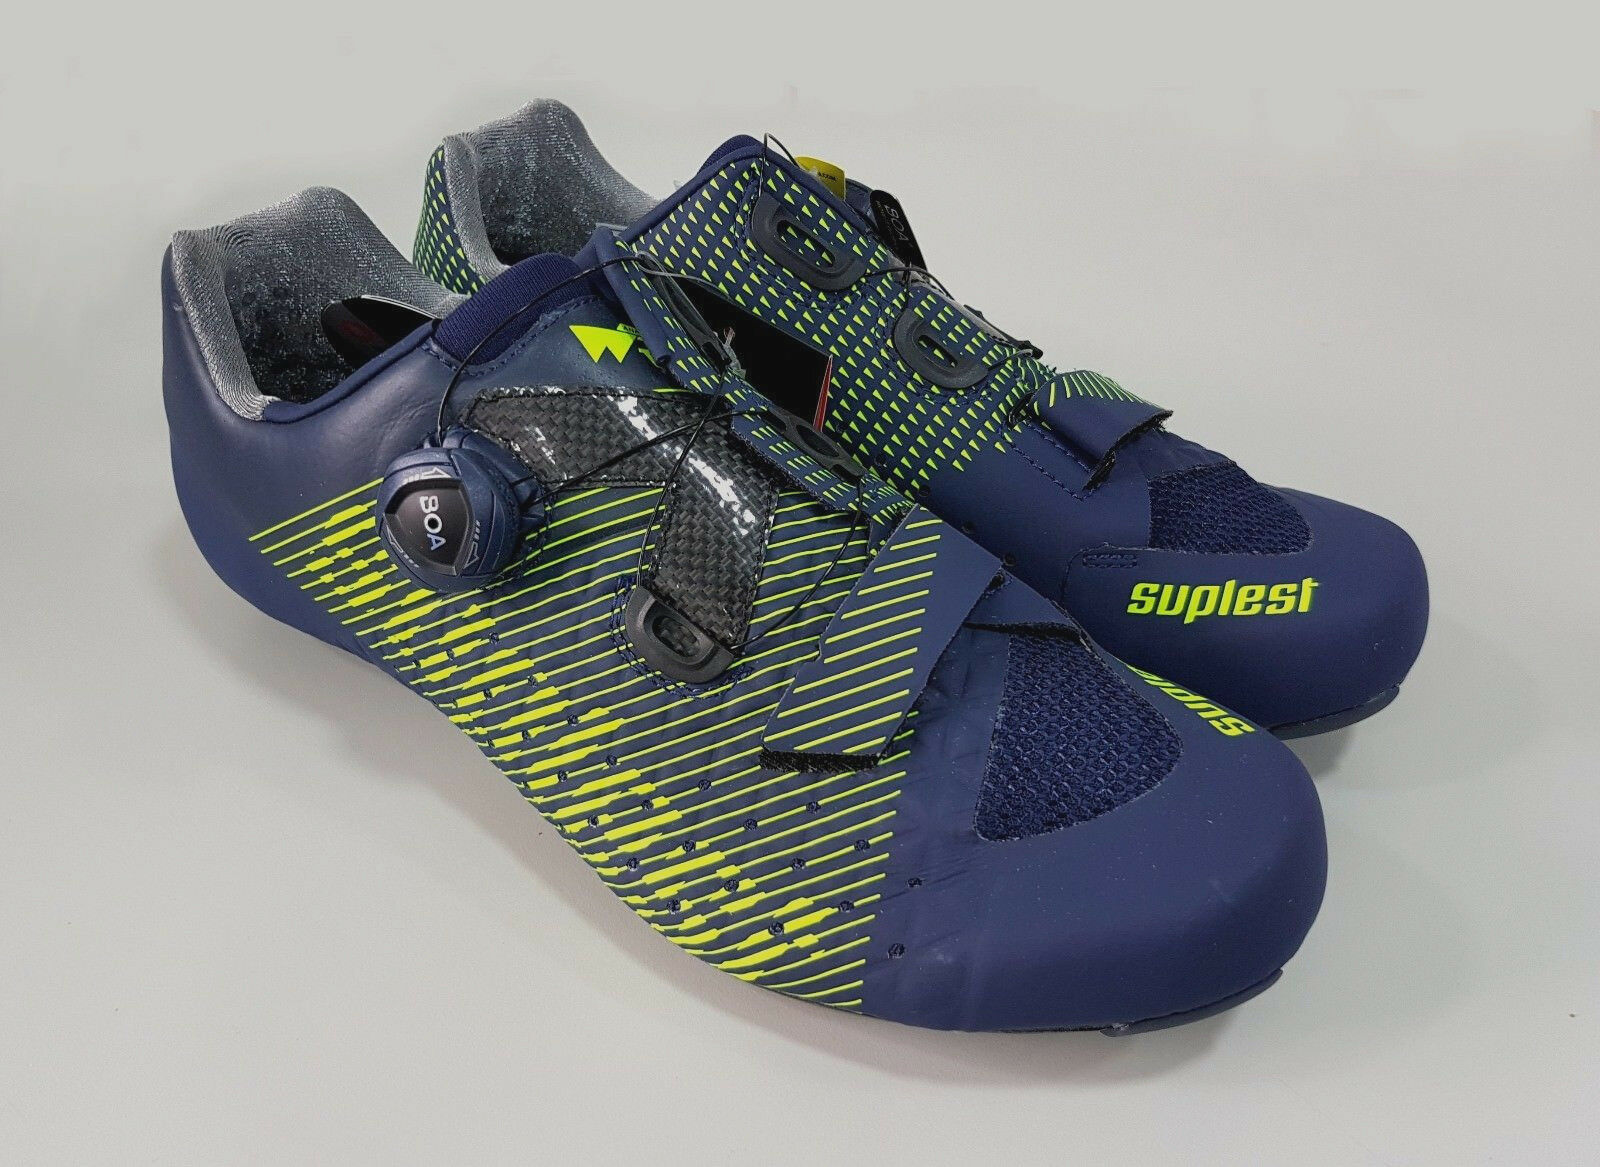 Suplest Edge3 Performance Comp Cycling Road Bike scarpe Dimensione 44.5 Navy Lime